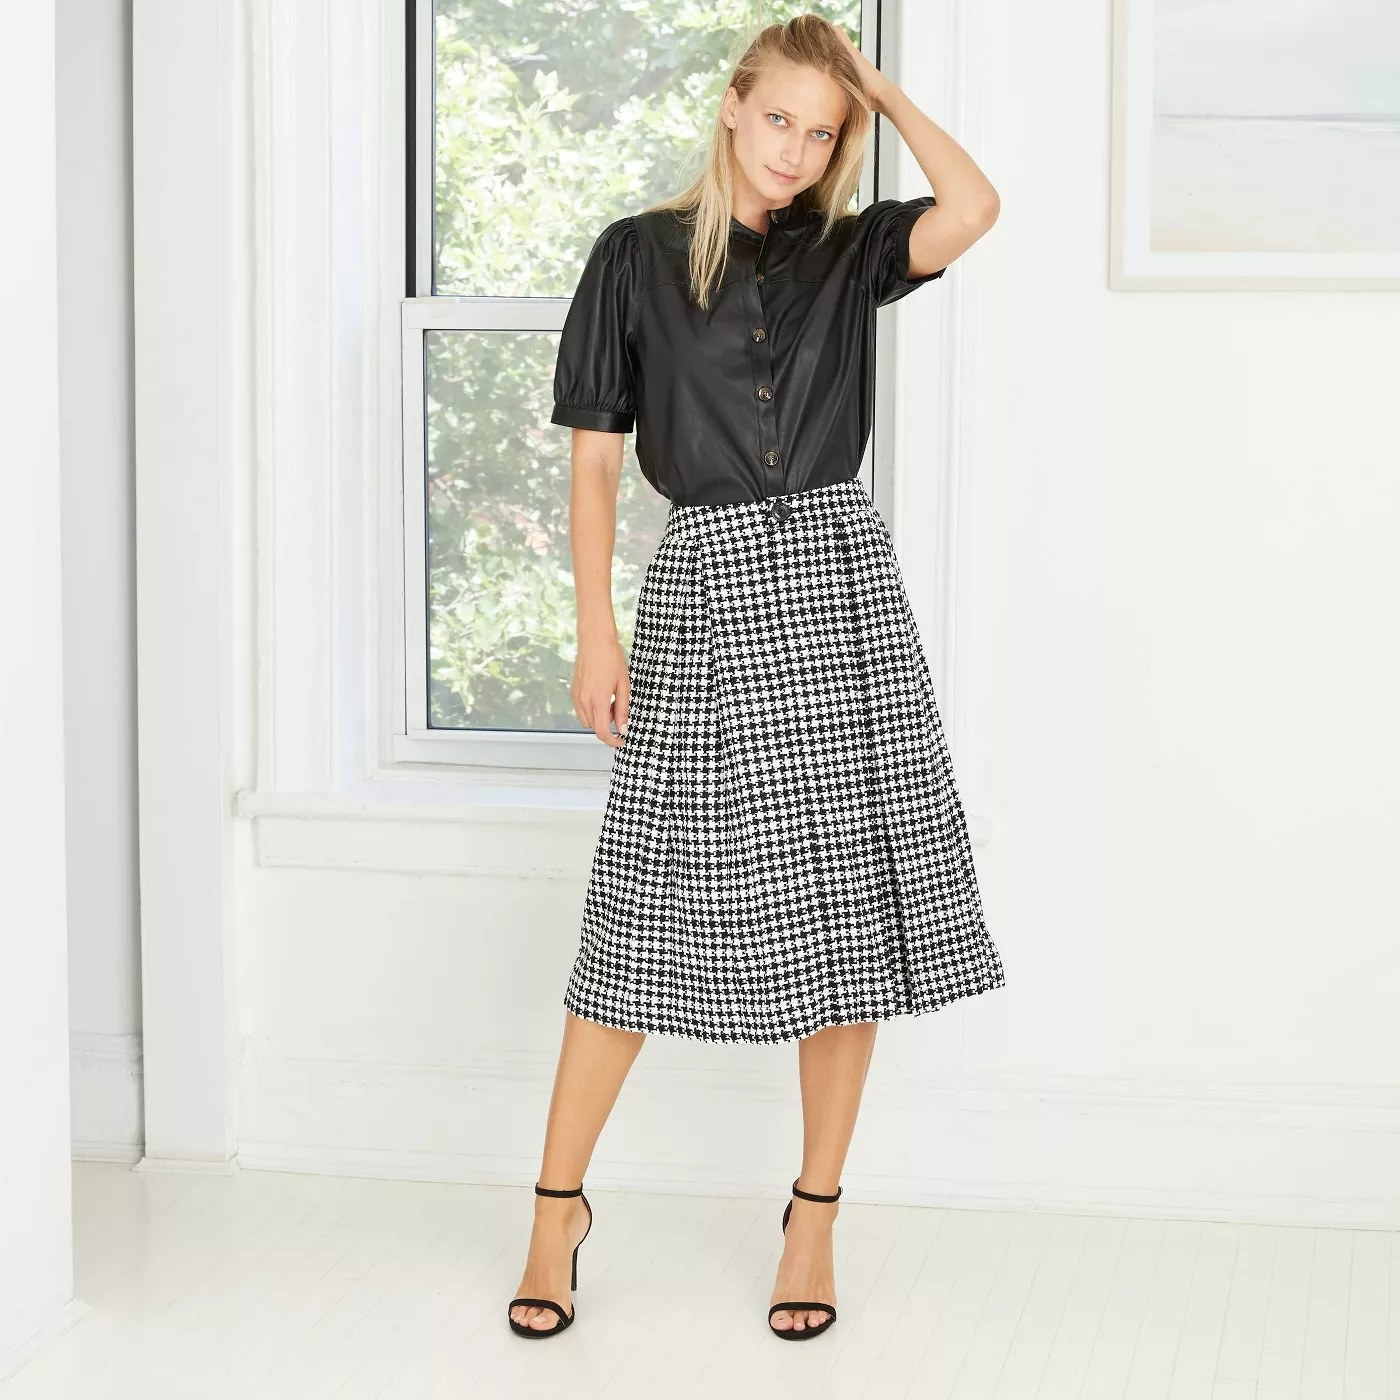 model wears button down leather shirt tucked into a plaid midi skirt